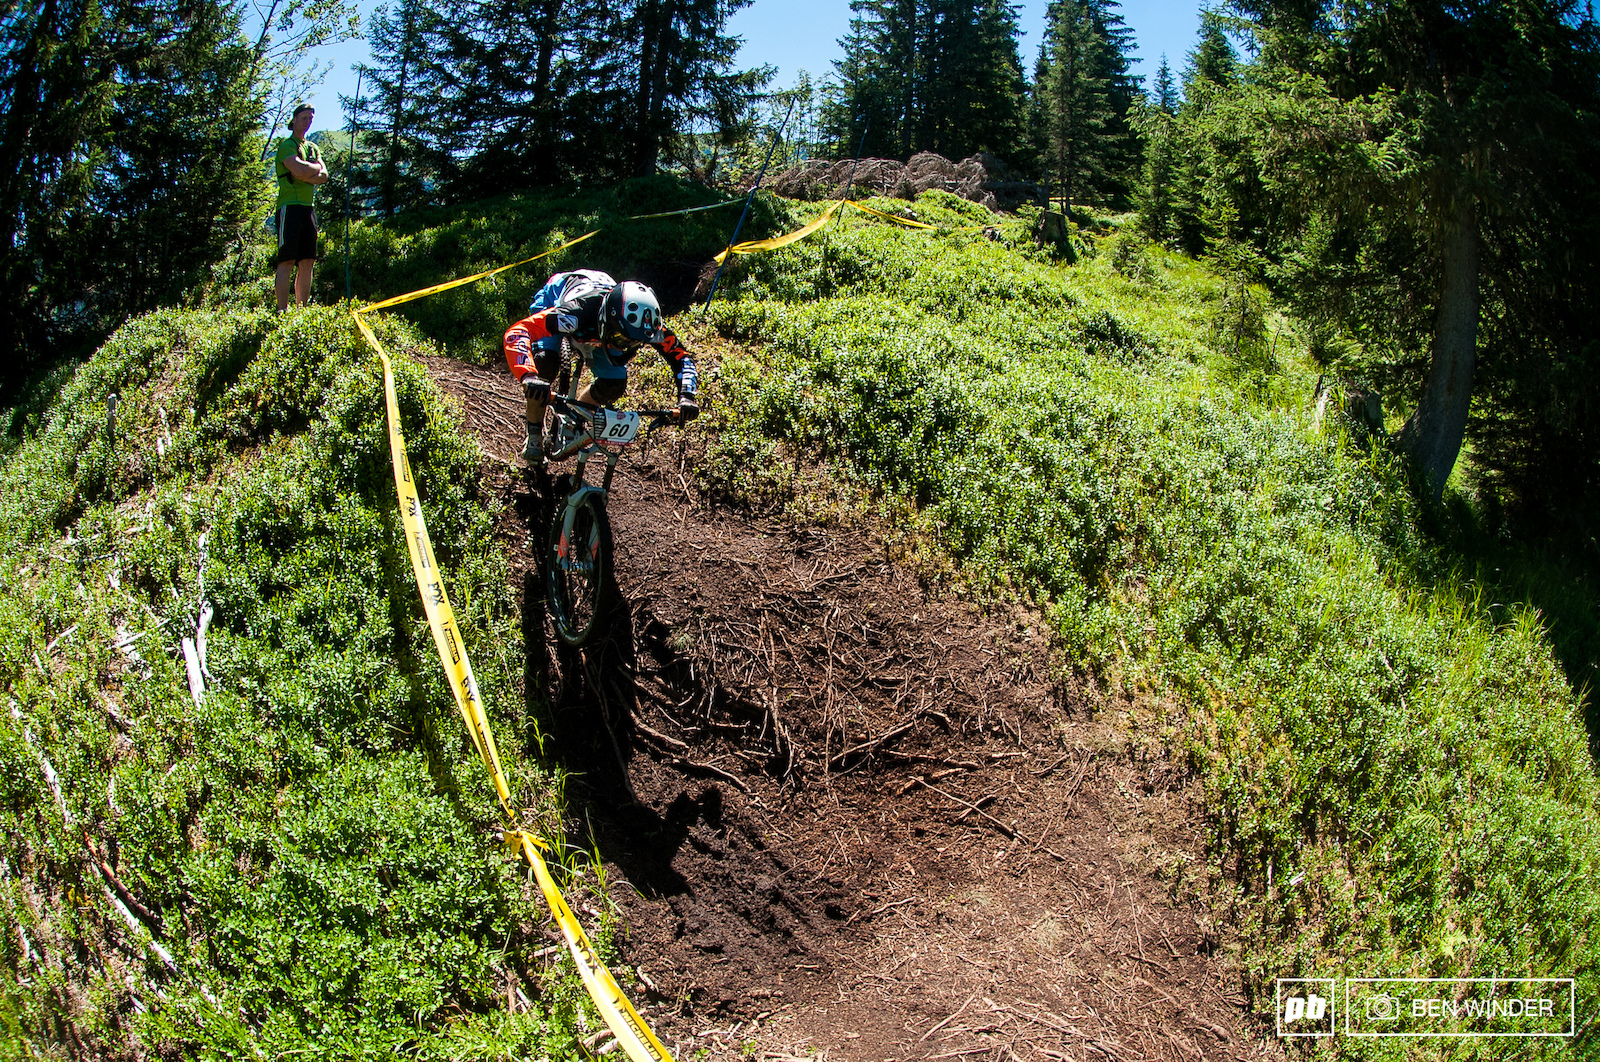 And dropping back in midway down the first stage is like a rooty pumptrack.